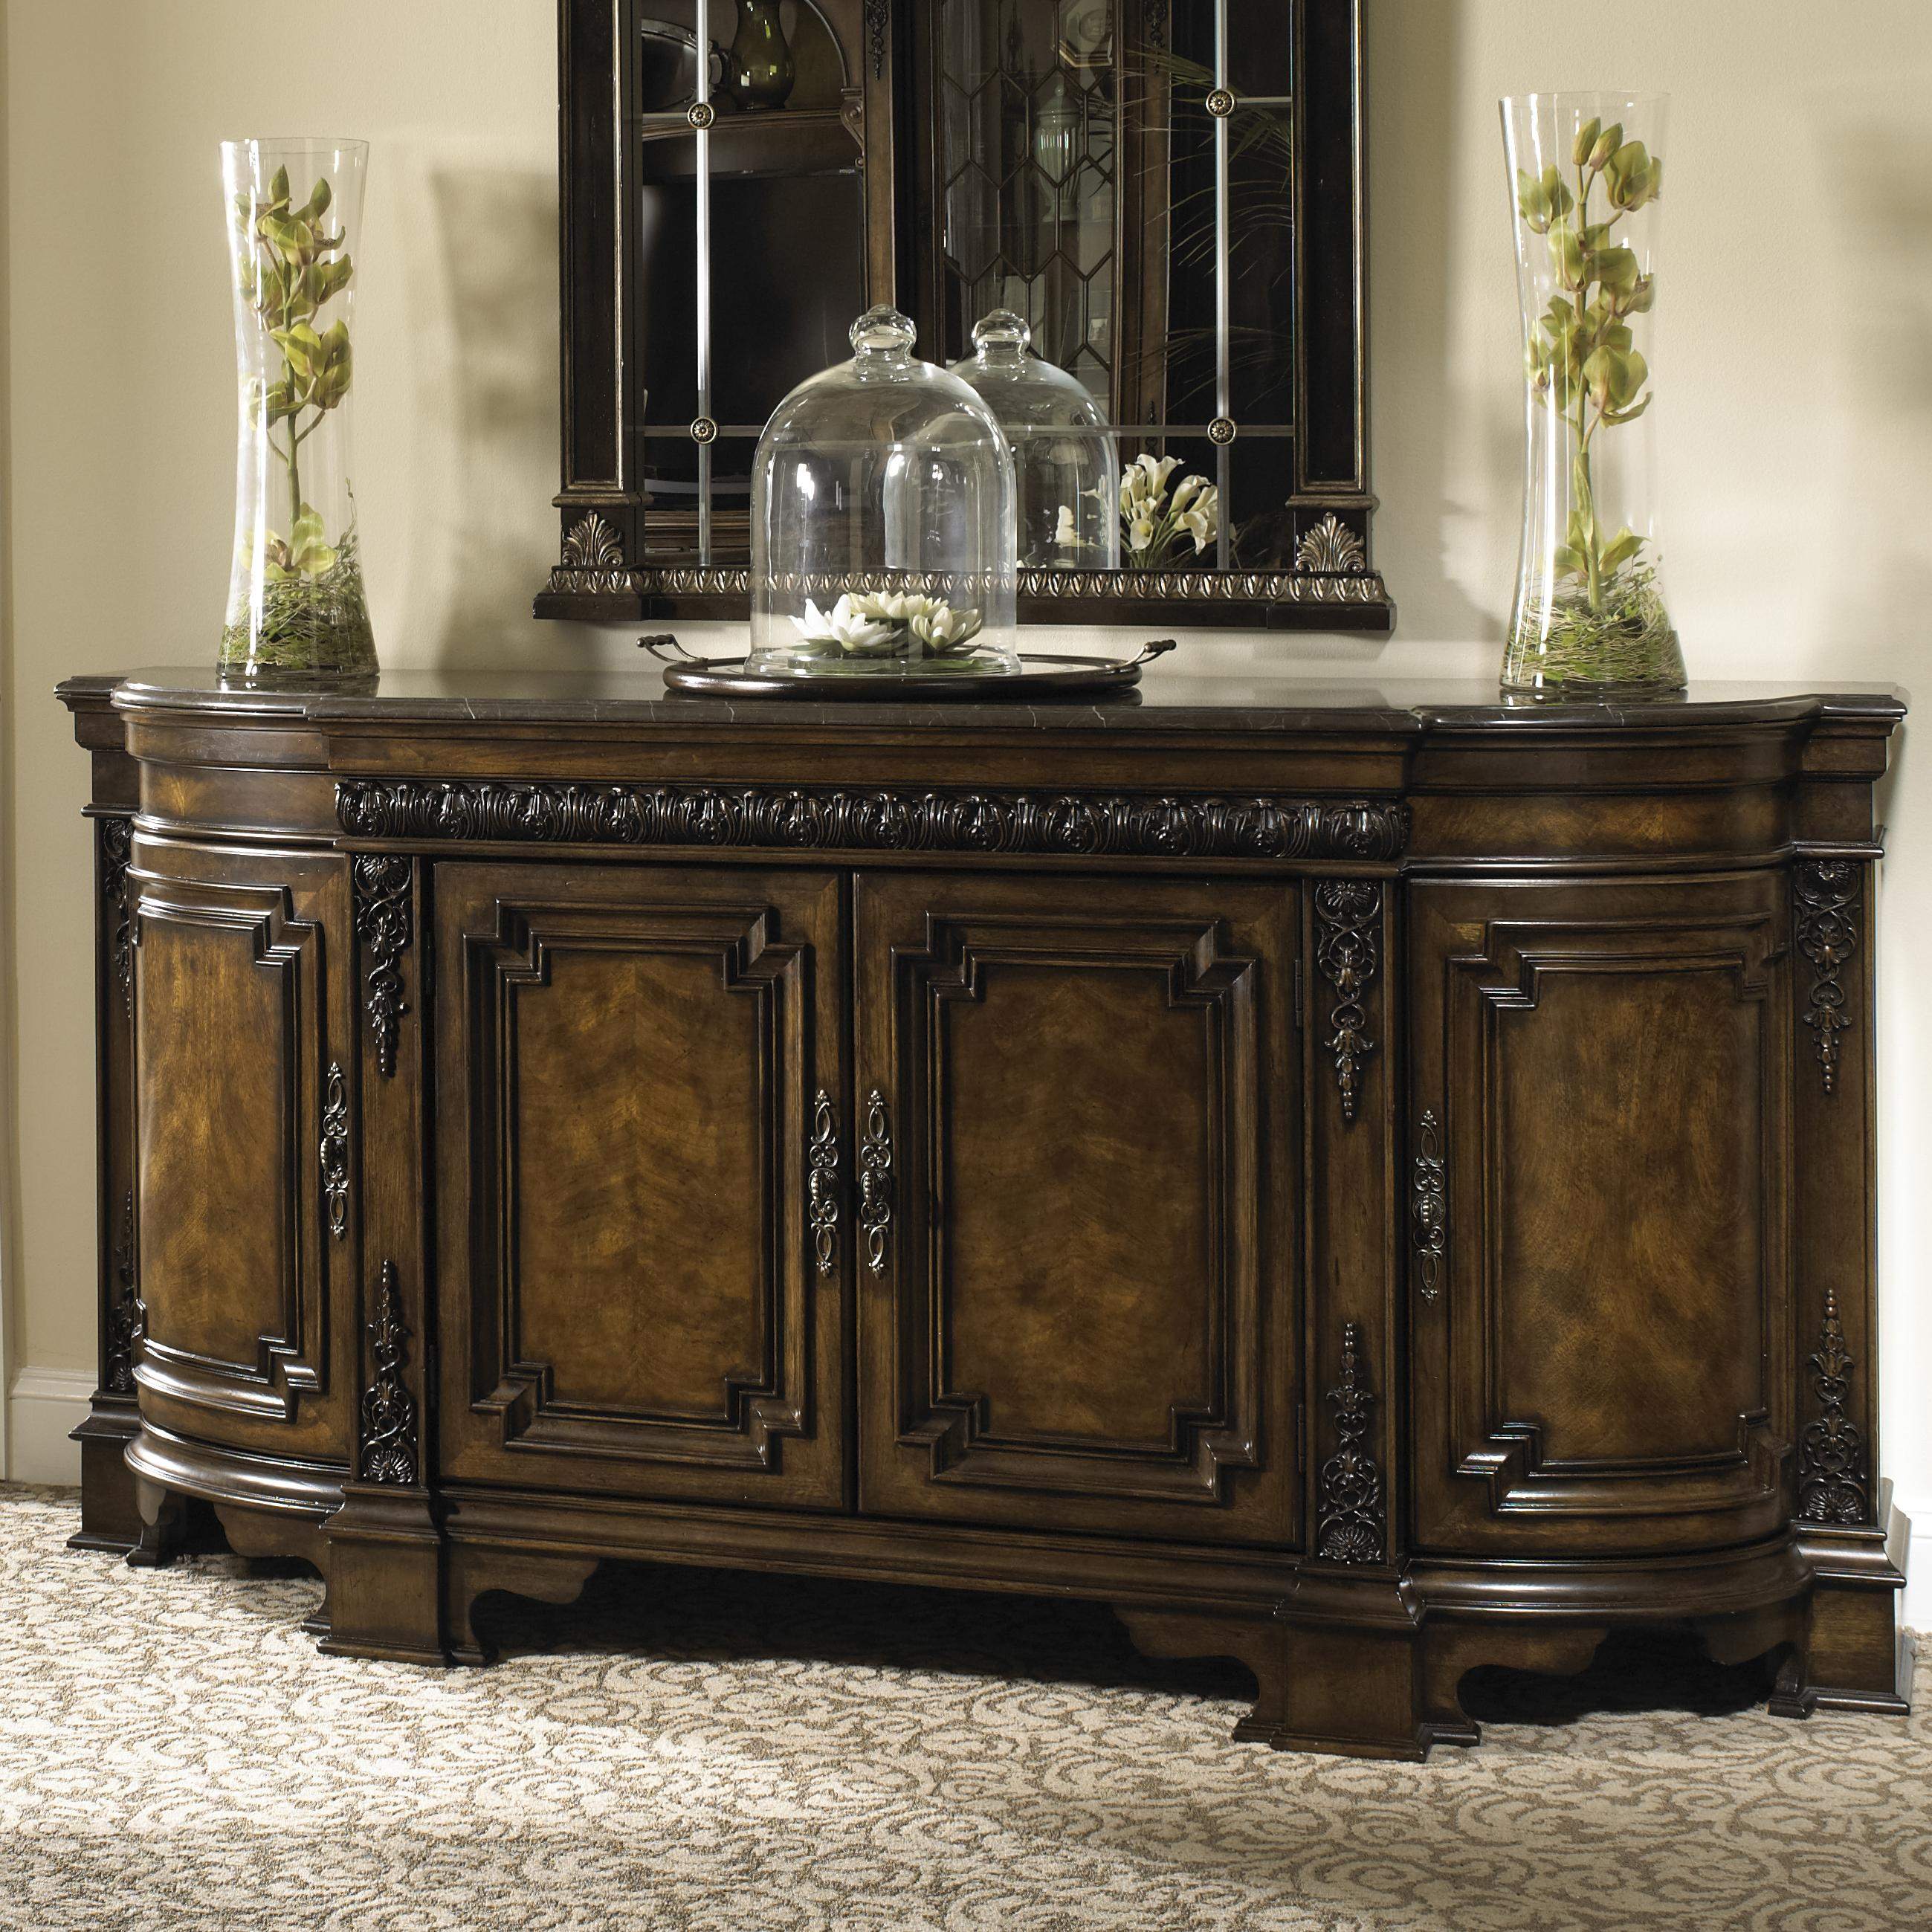 Dining Credenza with Wood Top, Gallery Rail, and Silverware ...